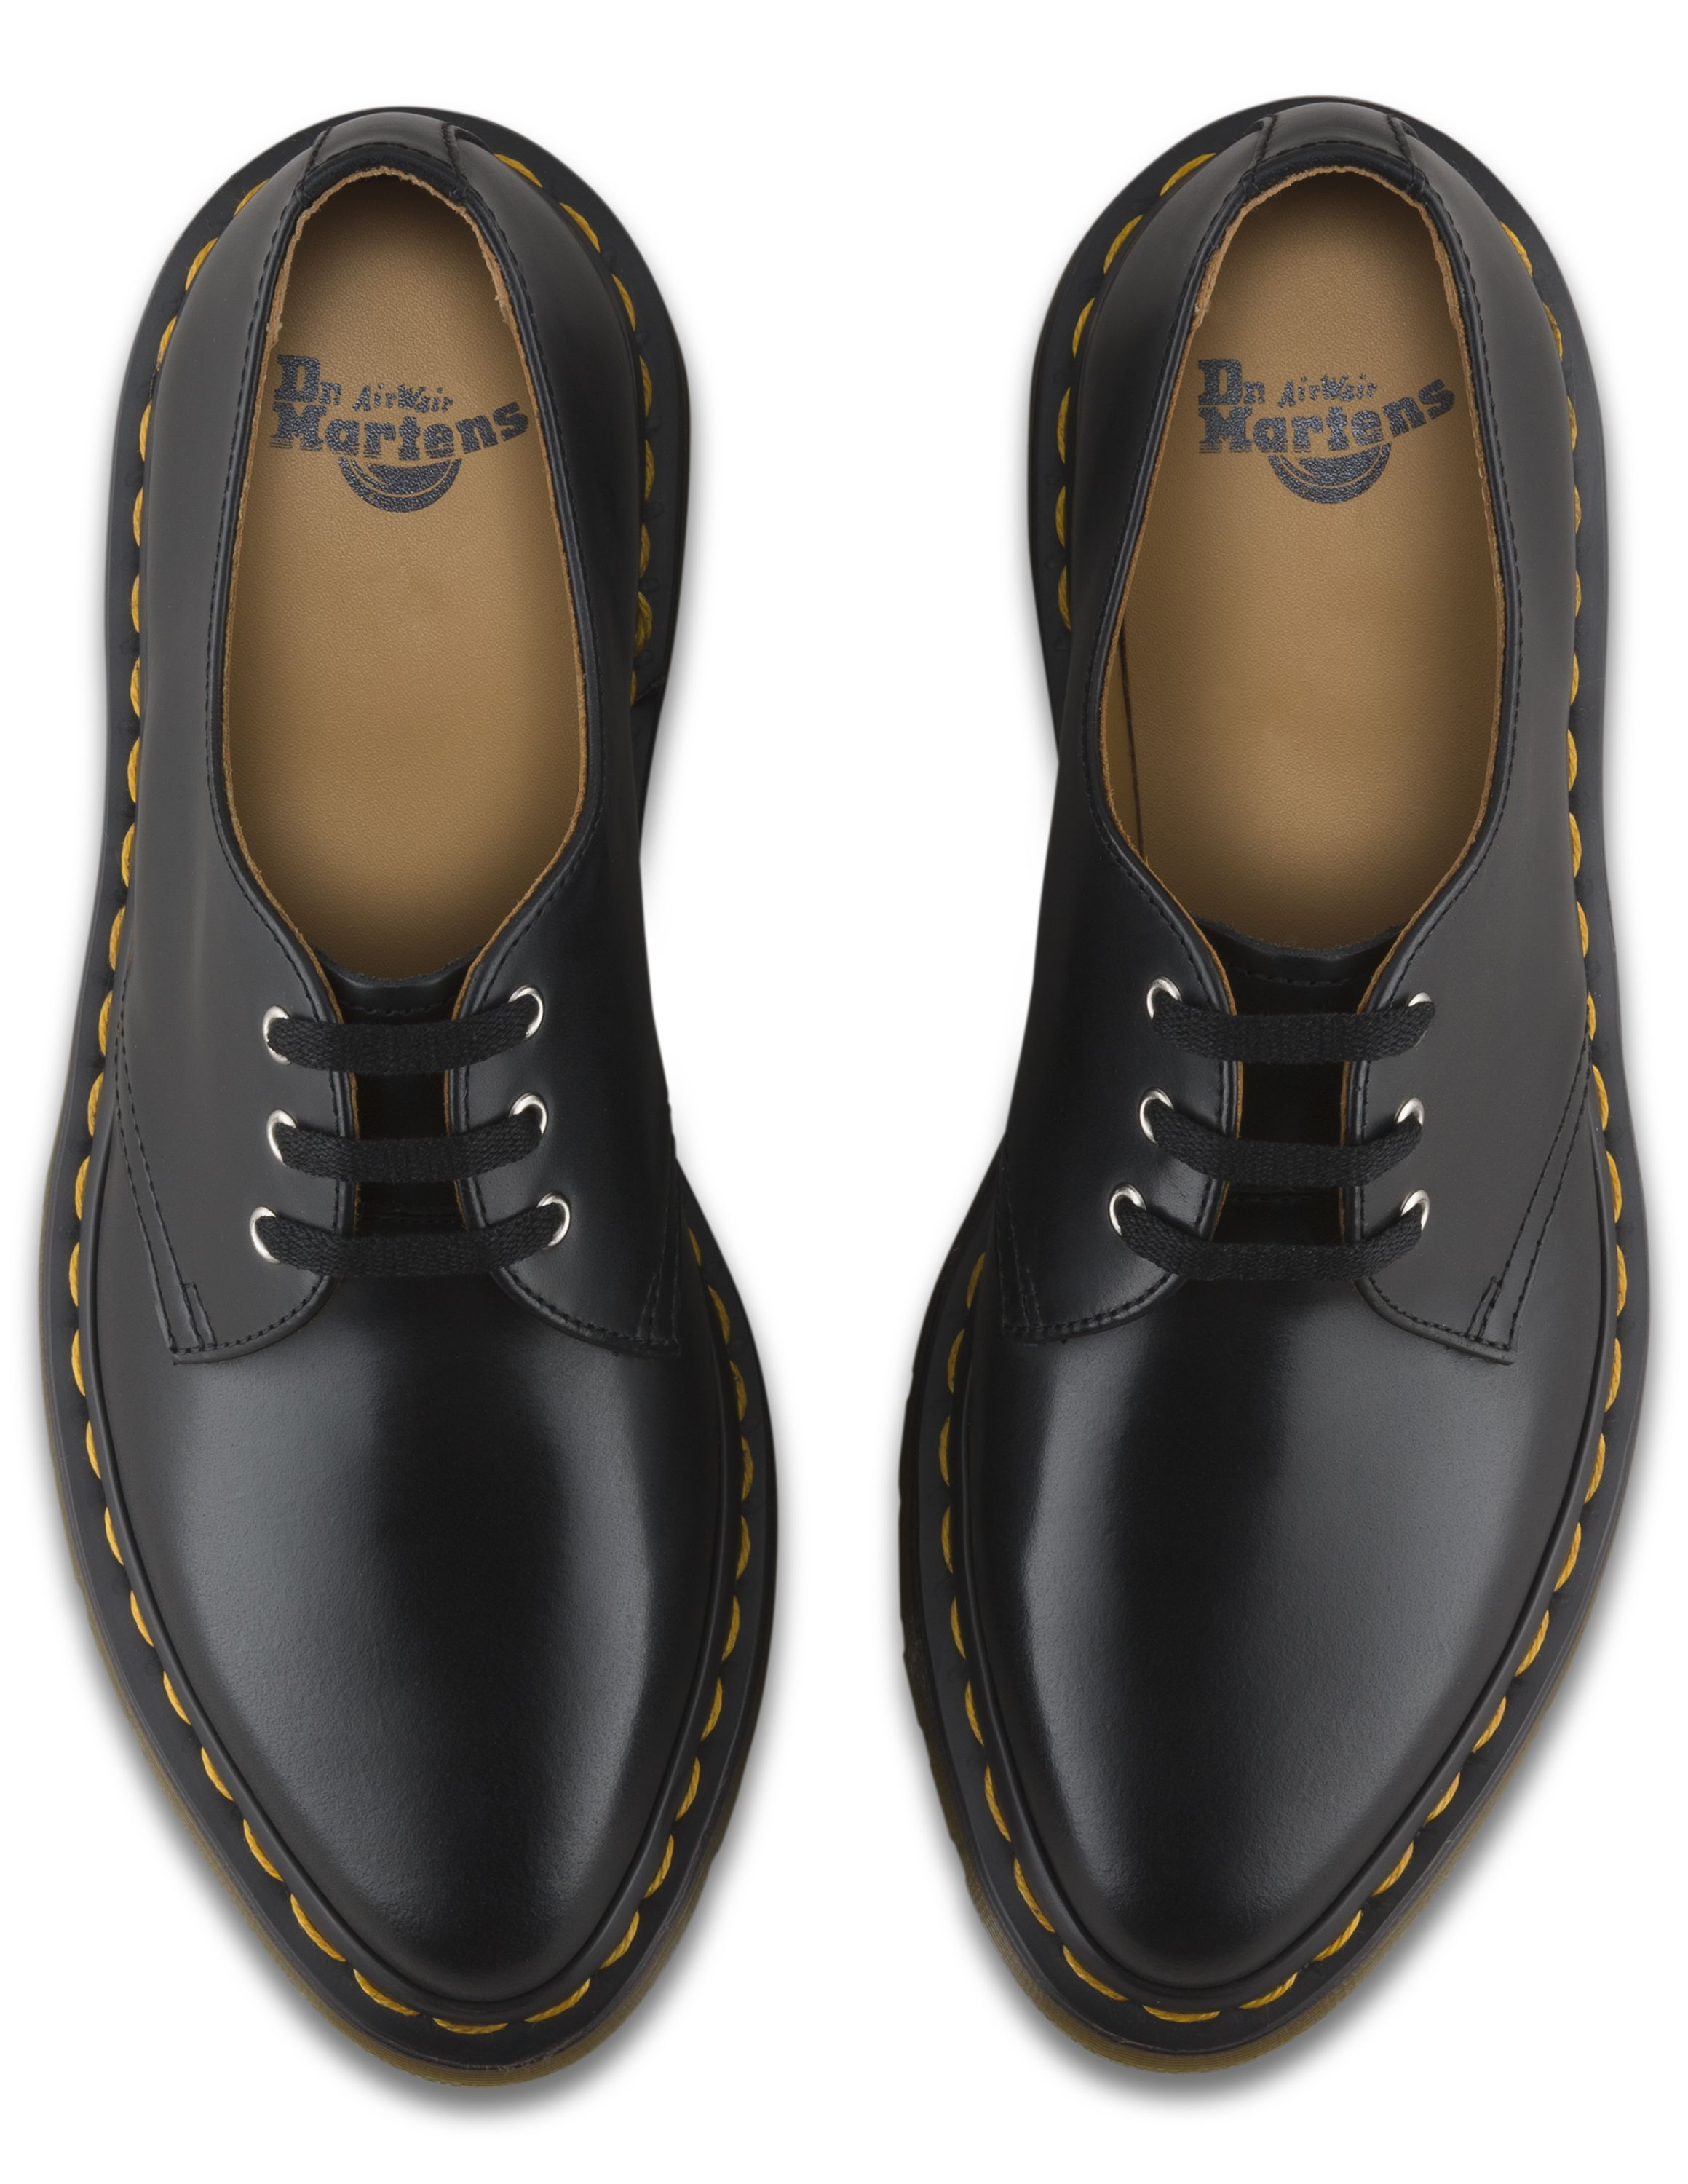 Dr martens dupree in 2020 | Women oxford shoes, Black lace